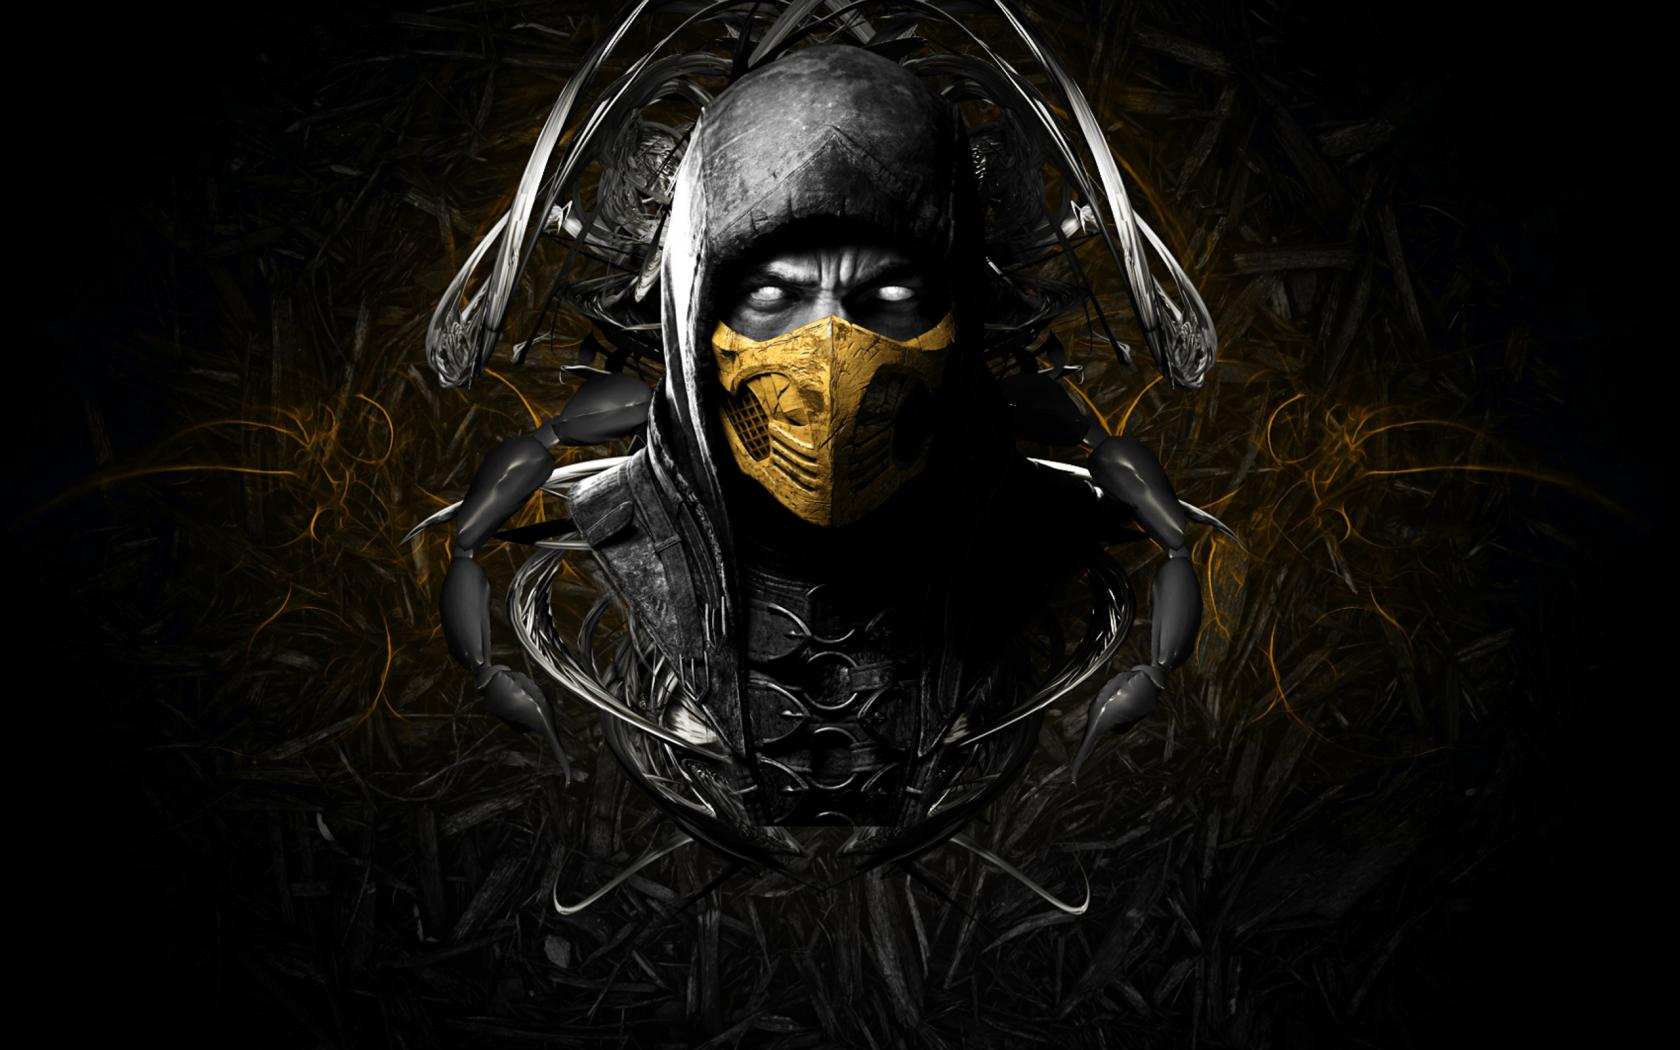 Artistic Images Of Scorpion From Mortal Kombat With Dark